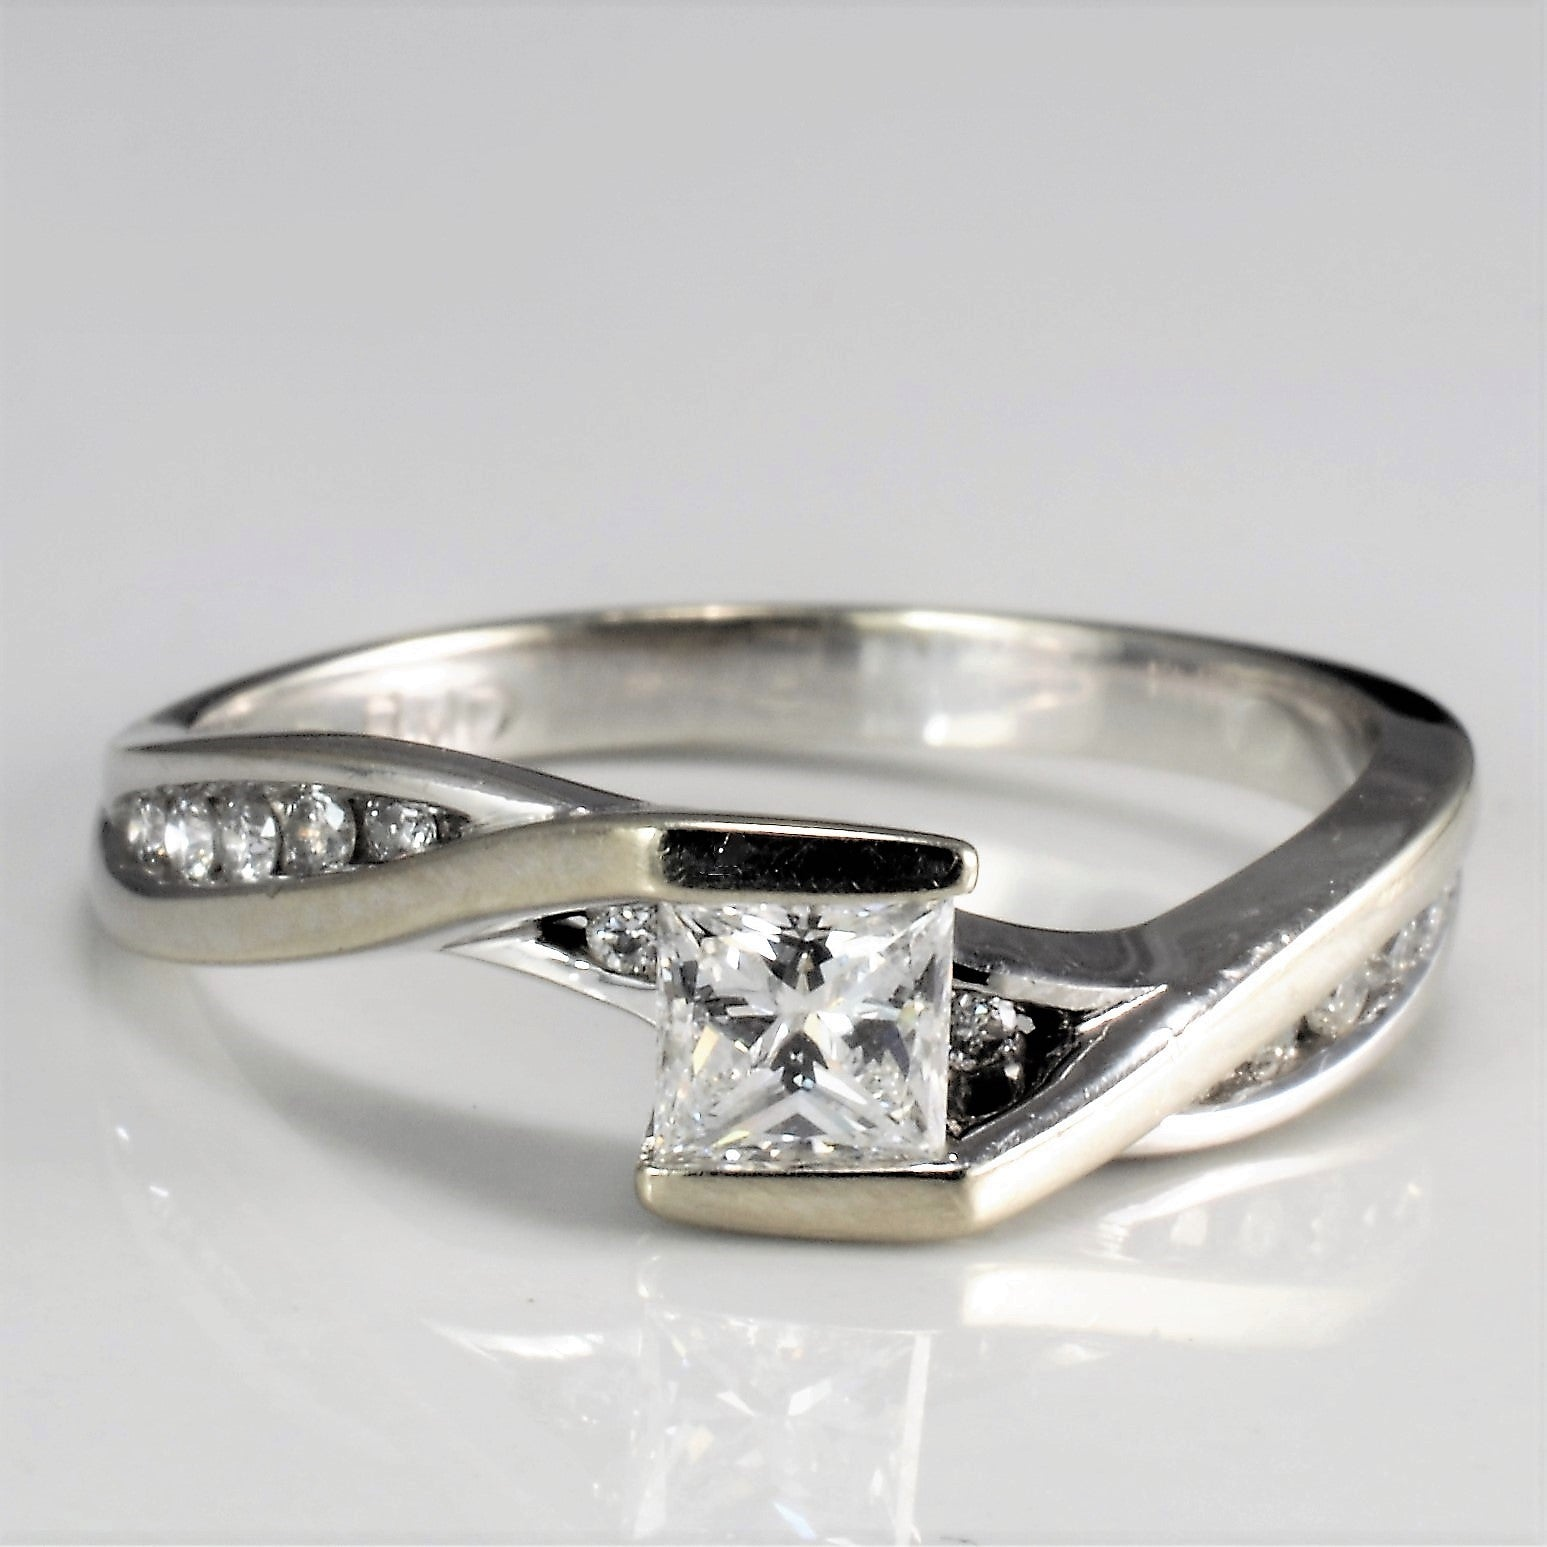 Semi Bezel Diamond Bypass Engagement Ring | 0.41 ctw, SZ 6.75 |